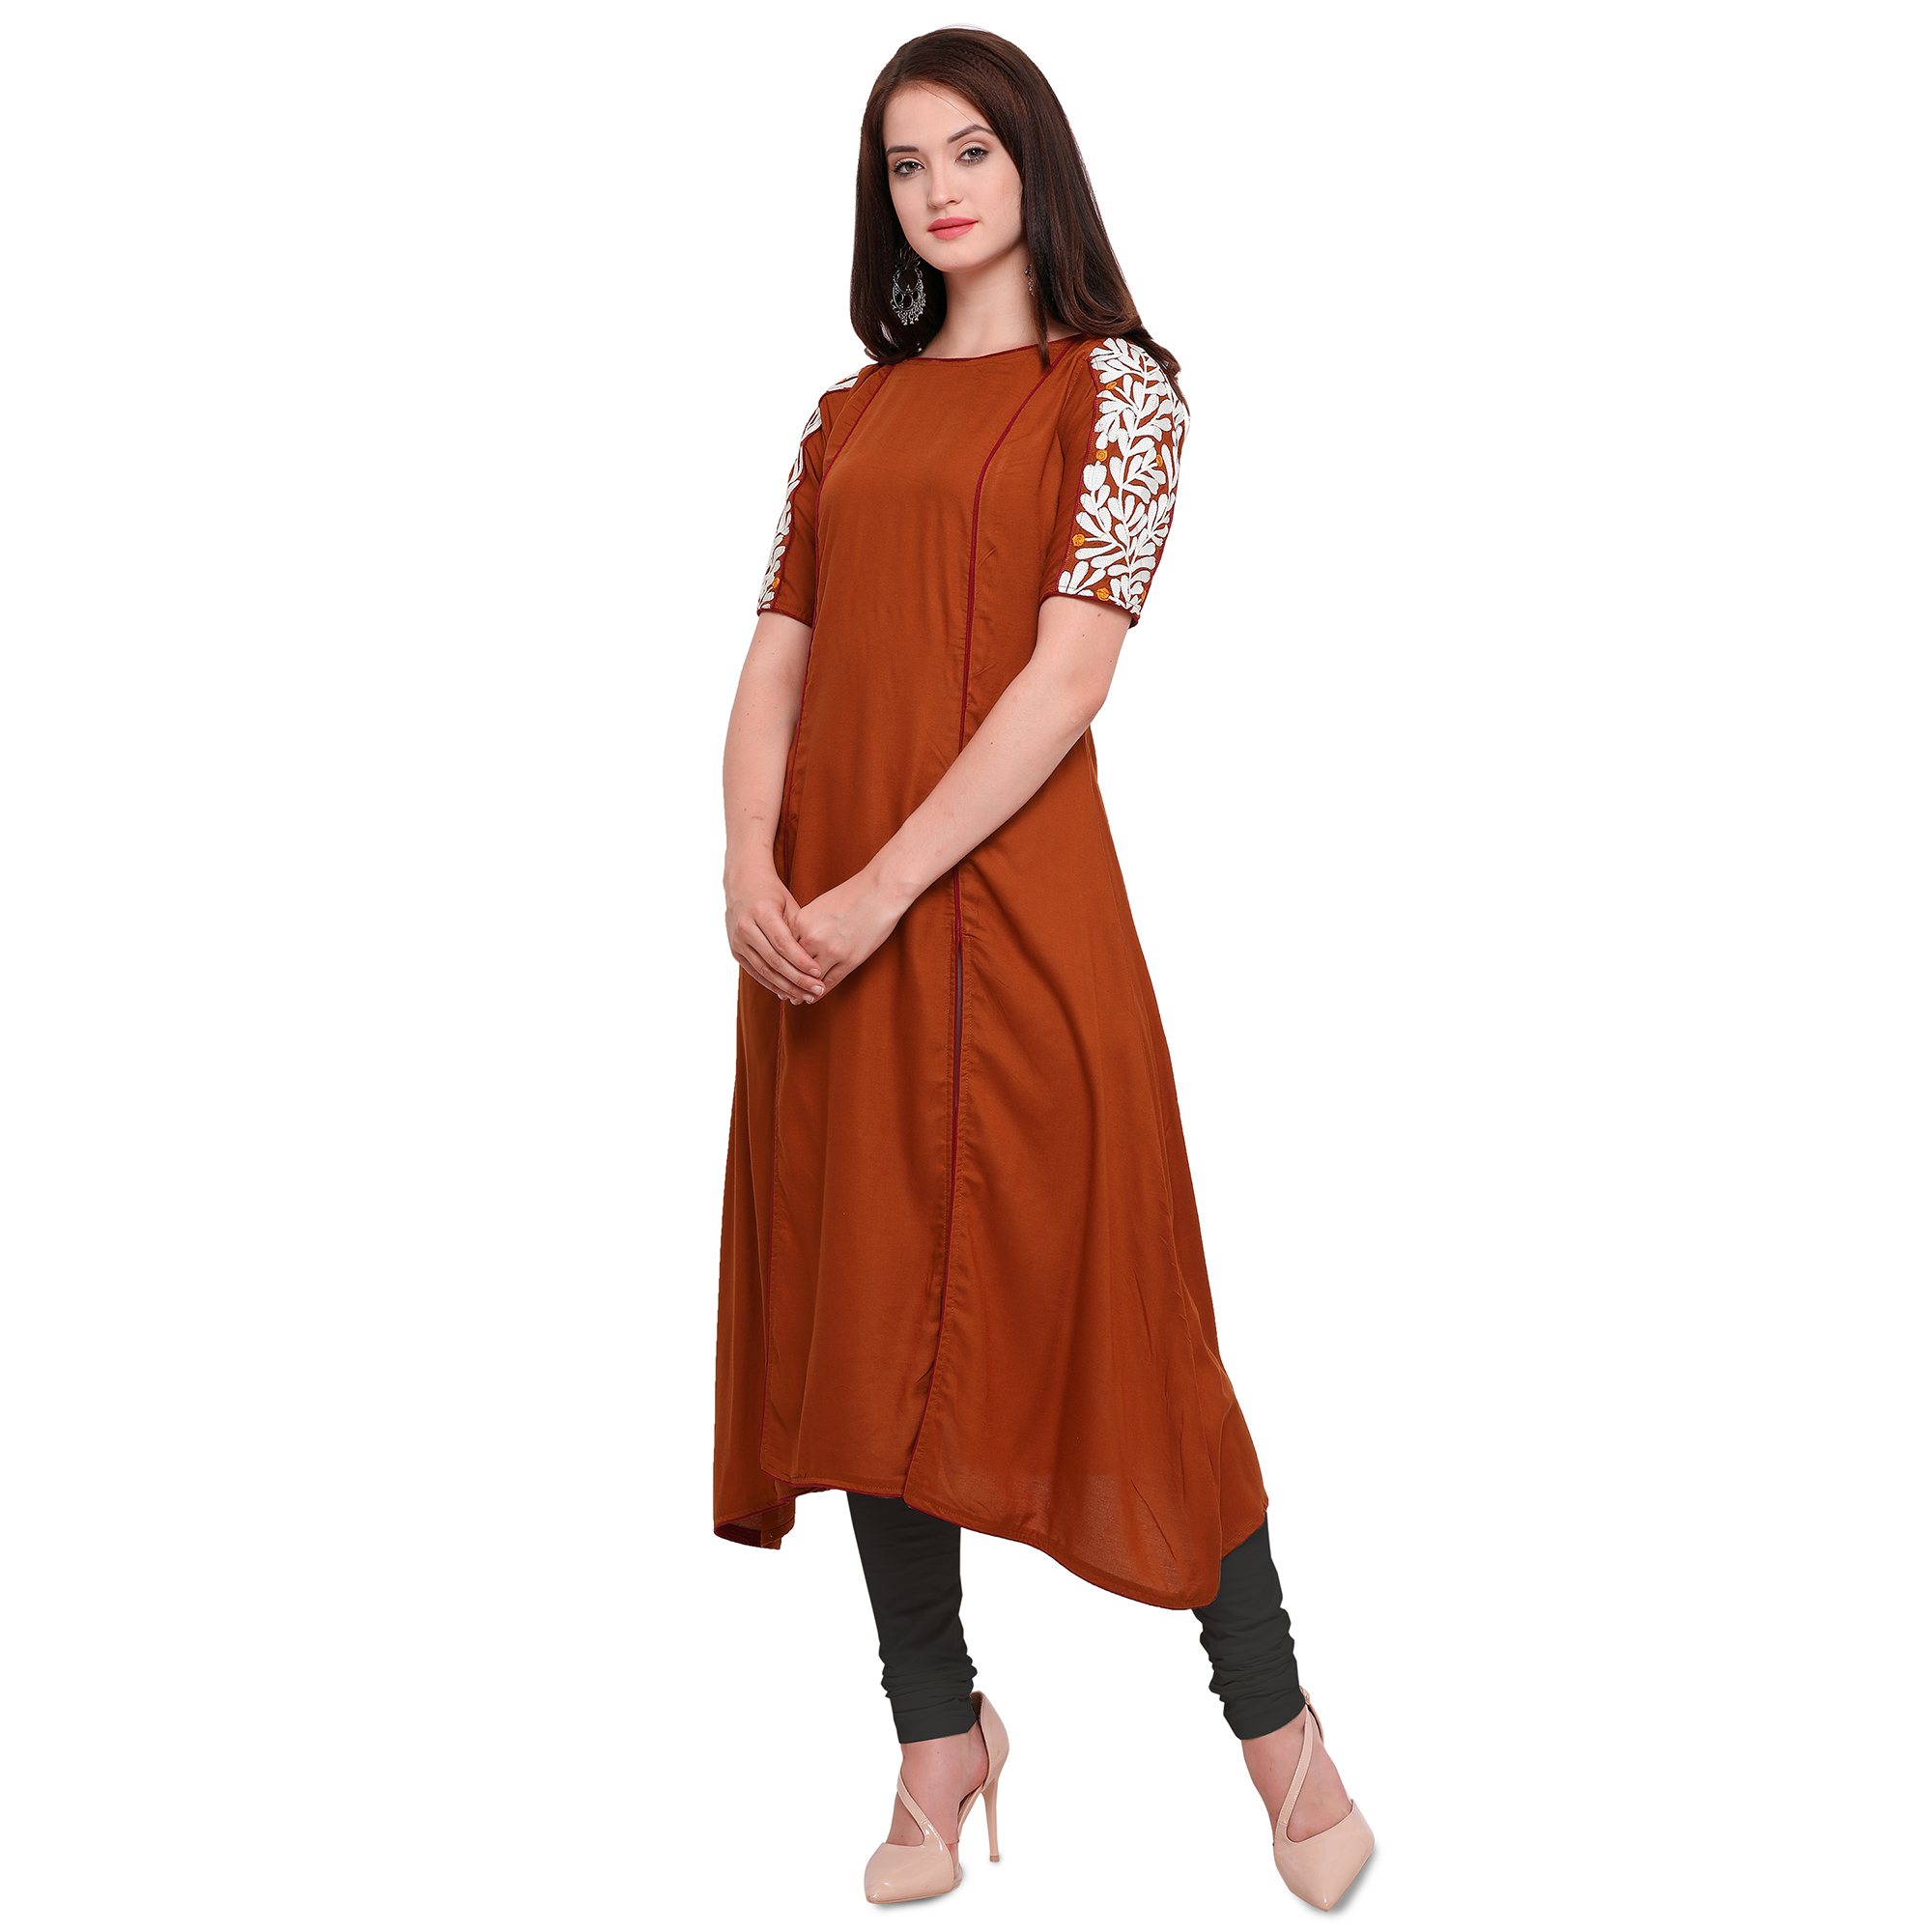 Different Rust Orange Colored Embroidered Cotton Kurti